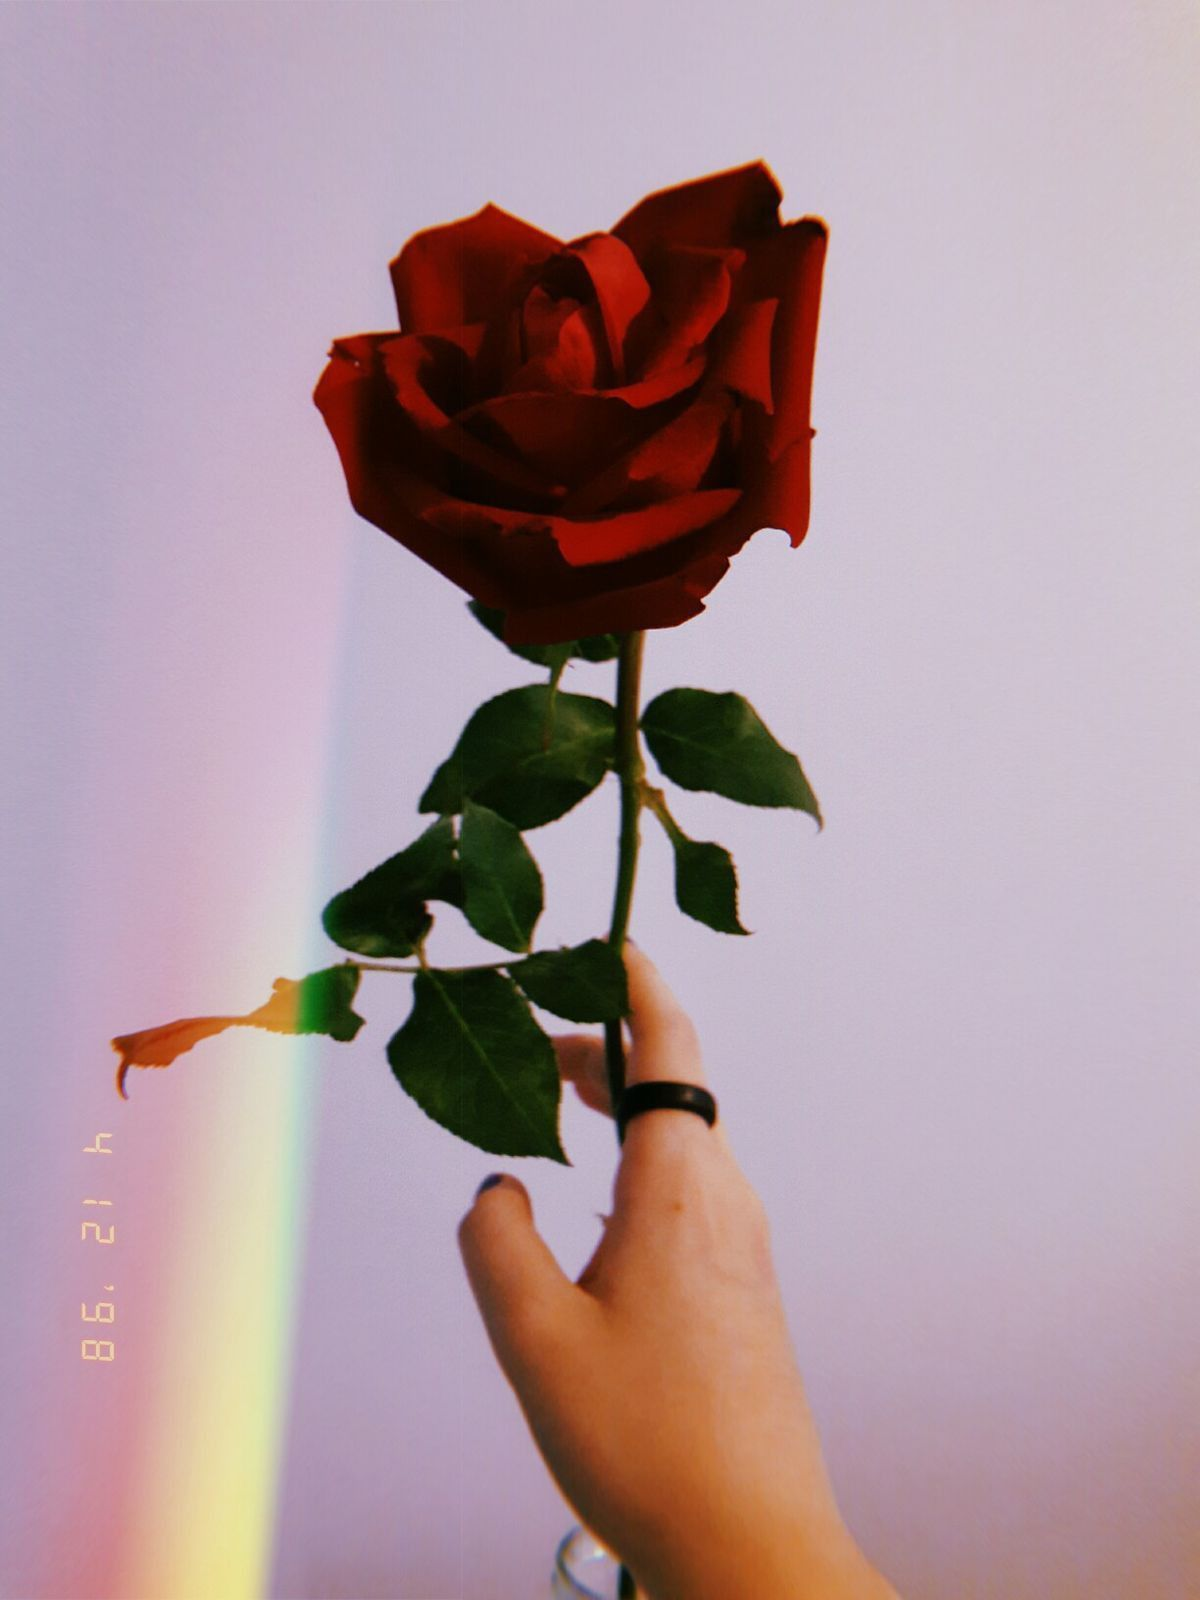 Sad Rose Aesthetic Wallpapers Top Free Sad Rose Aesthetic Backgrounds Wallpaperaccess That offers lots of beauty services whether it be skin care, body care, hair. sad rose aesthetic wallpapers top